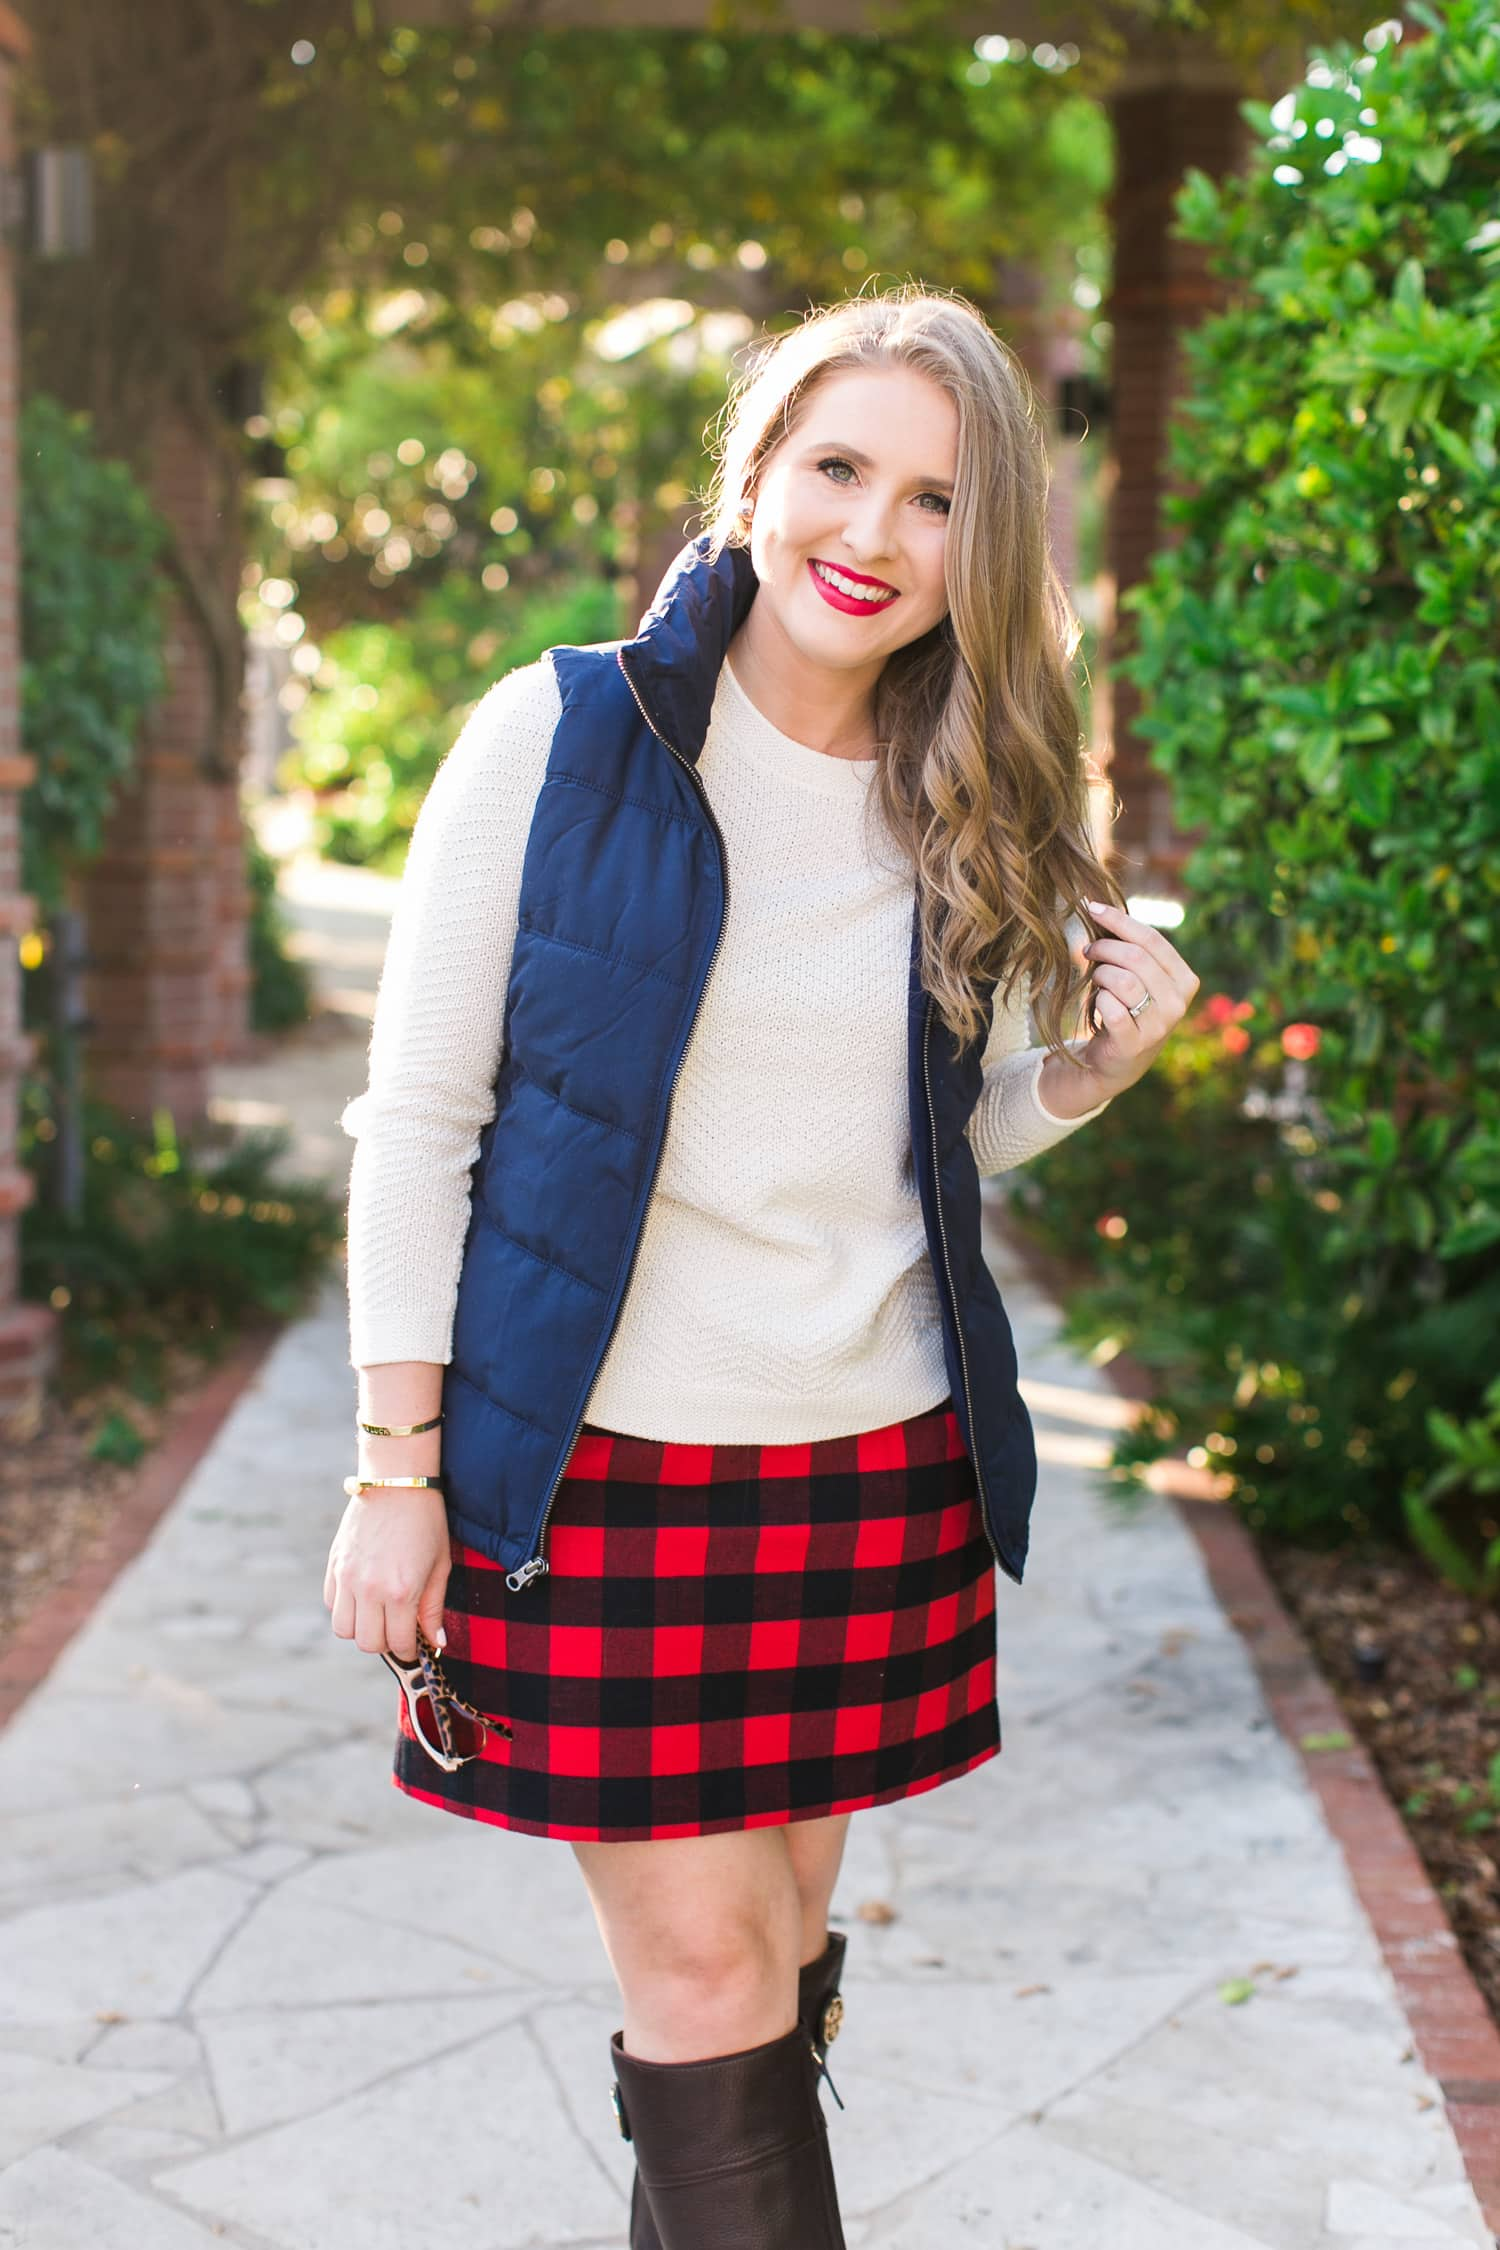 A cozy fall outfit + the best Gap and Old Navy Black Friday Deals +  get $20 back with any $50 purchase at Gap Inc with your Marriott Rewards Premier Card. Preppy fall outfit idea featuring Old Navy navy puffer vest, cream sweater, red plaid skirt, Tory Burch boots, Foster Grant sunglasses, and Clinique Cherry Pop lipstick styled by Florida fashion blogger Ashley Brooke Nicholas